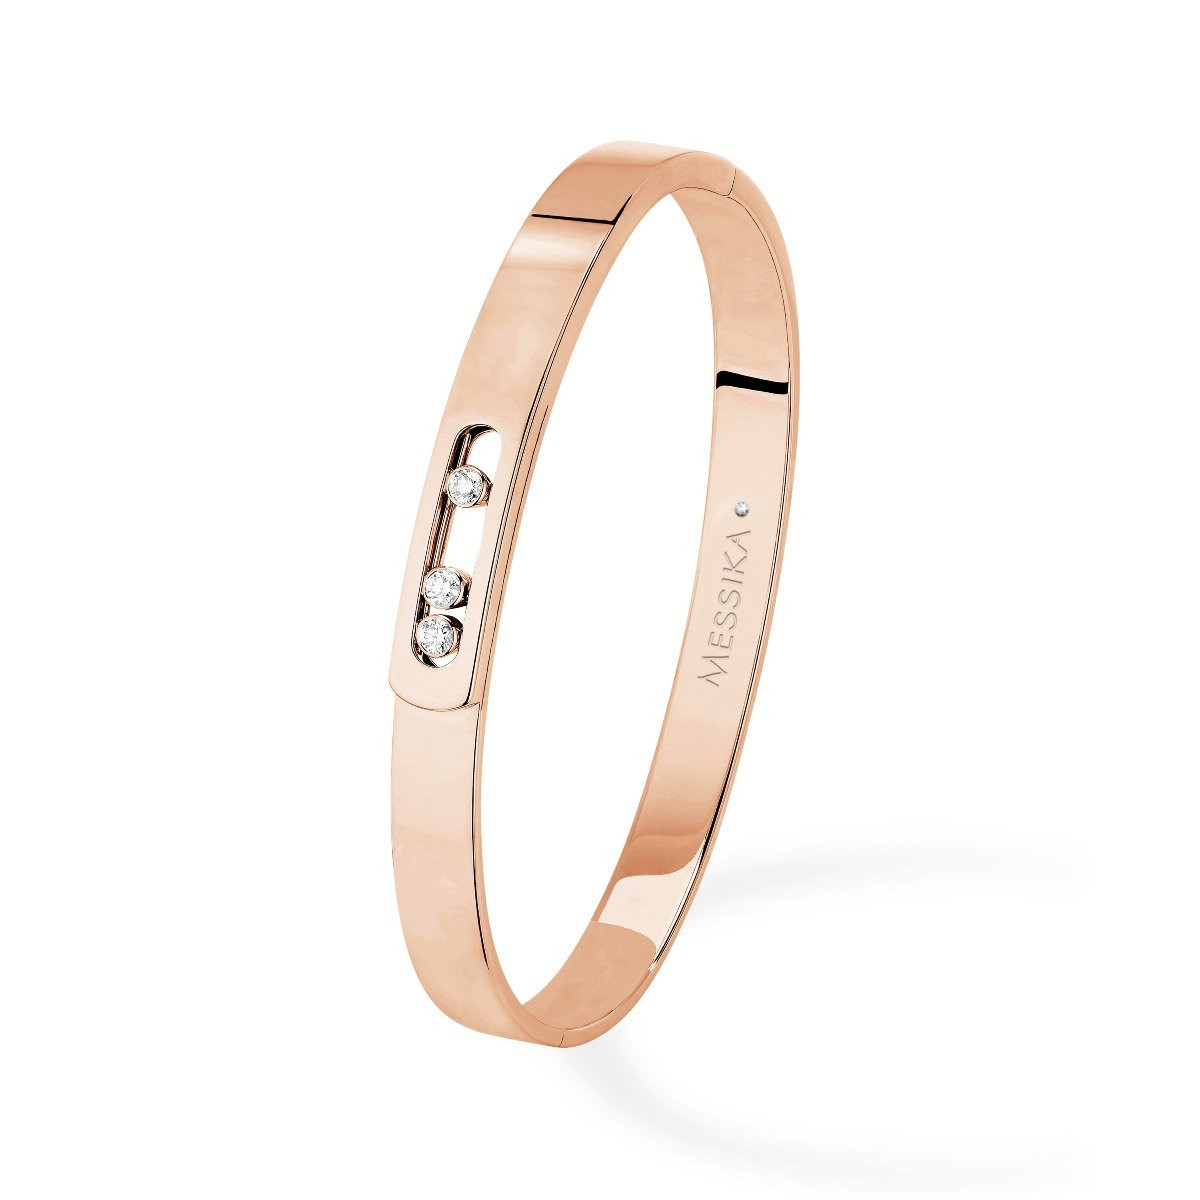 Messika Move Noa Bangle Bracelet in 18K Gold front view